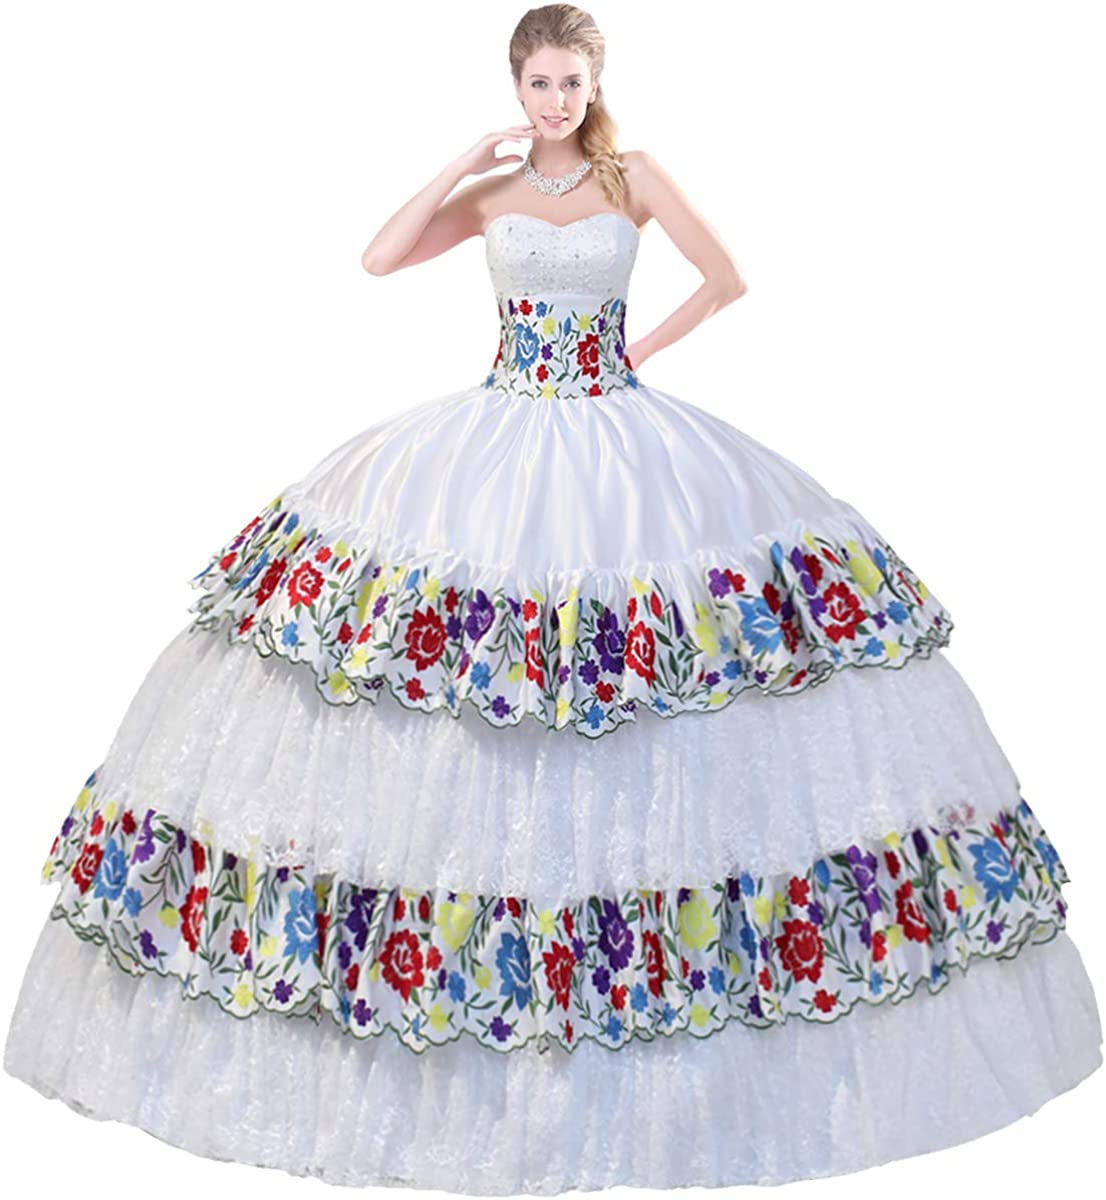 Princess Western Cowgirl Mexico Charro Embroidery Quinceanera Ball Gown with Lace